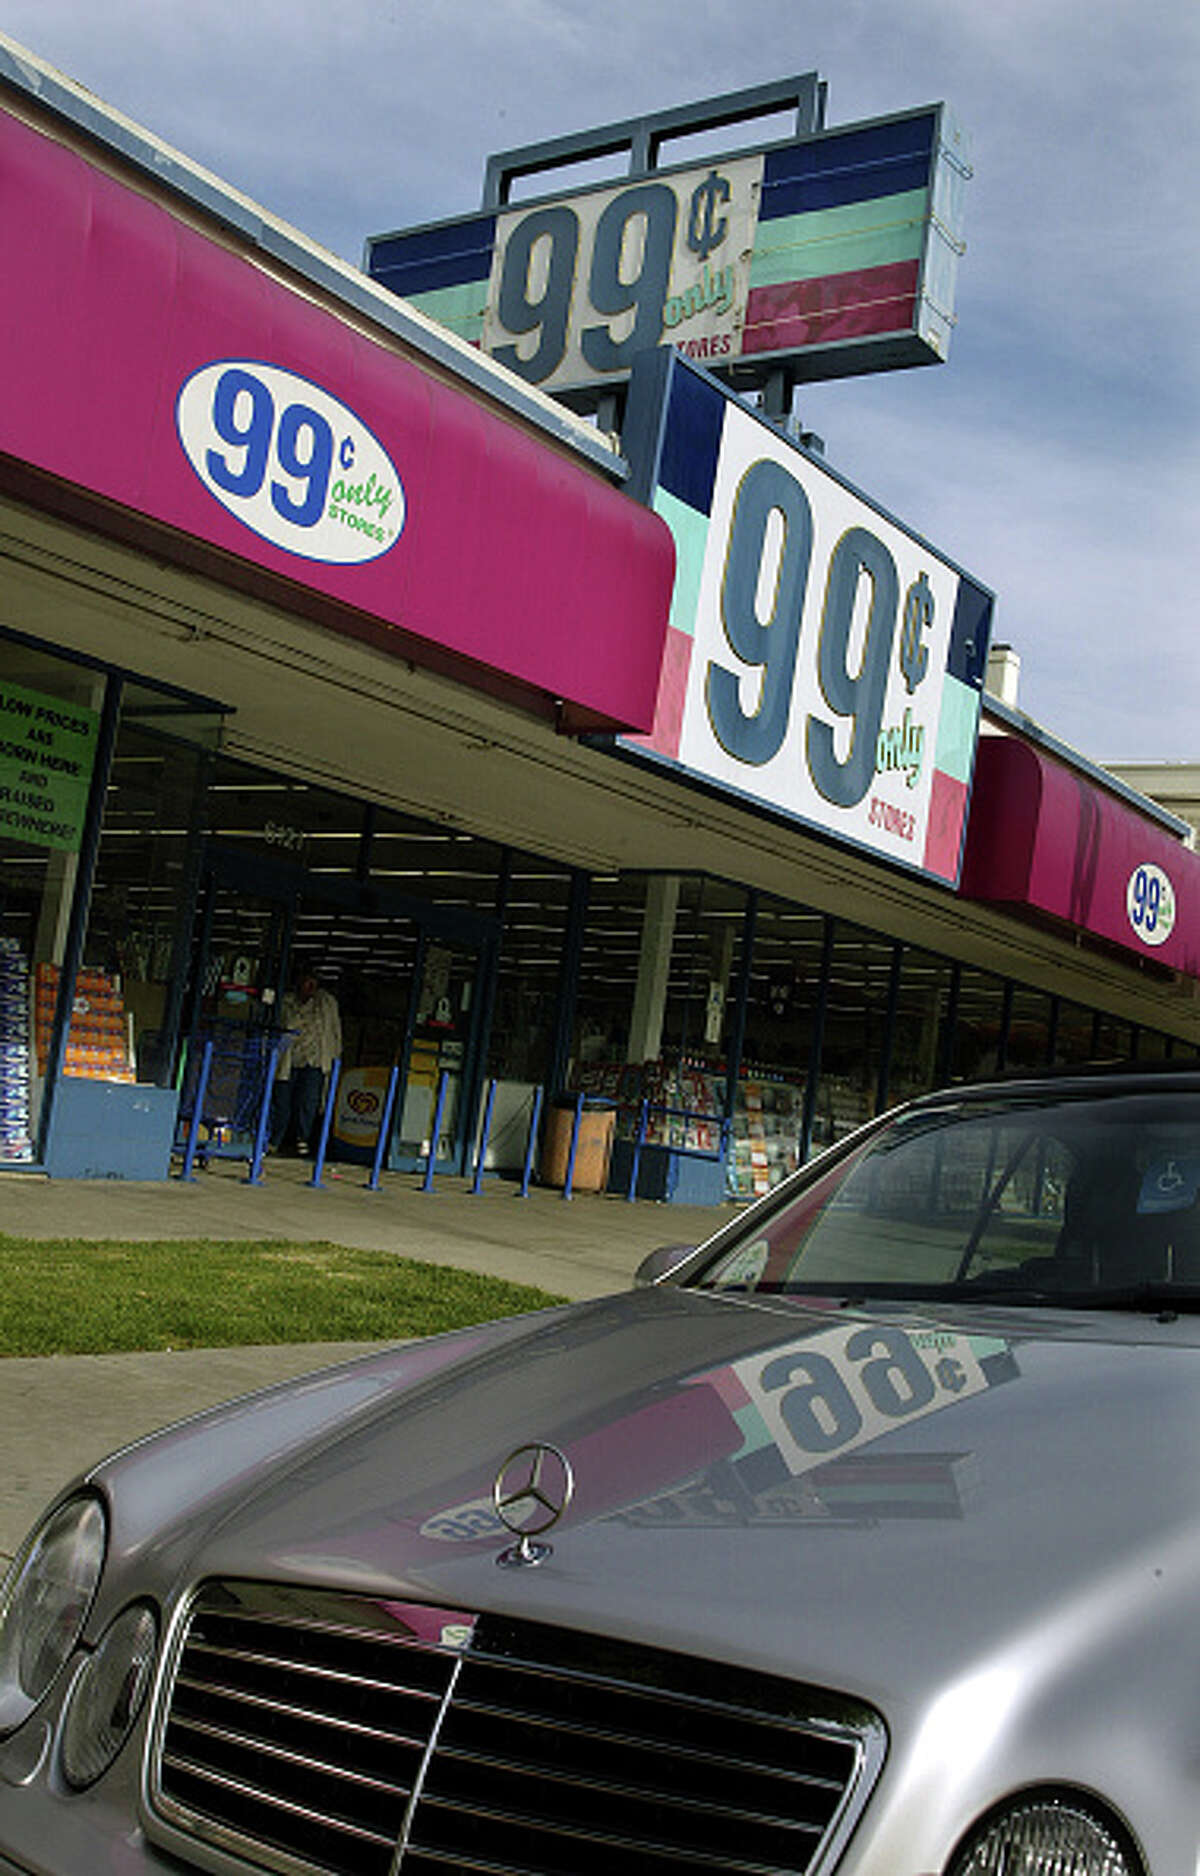 99 Cents Only Stores has nearly 400 locations including 25 in Houston.